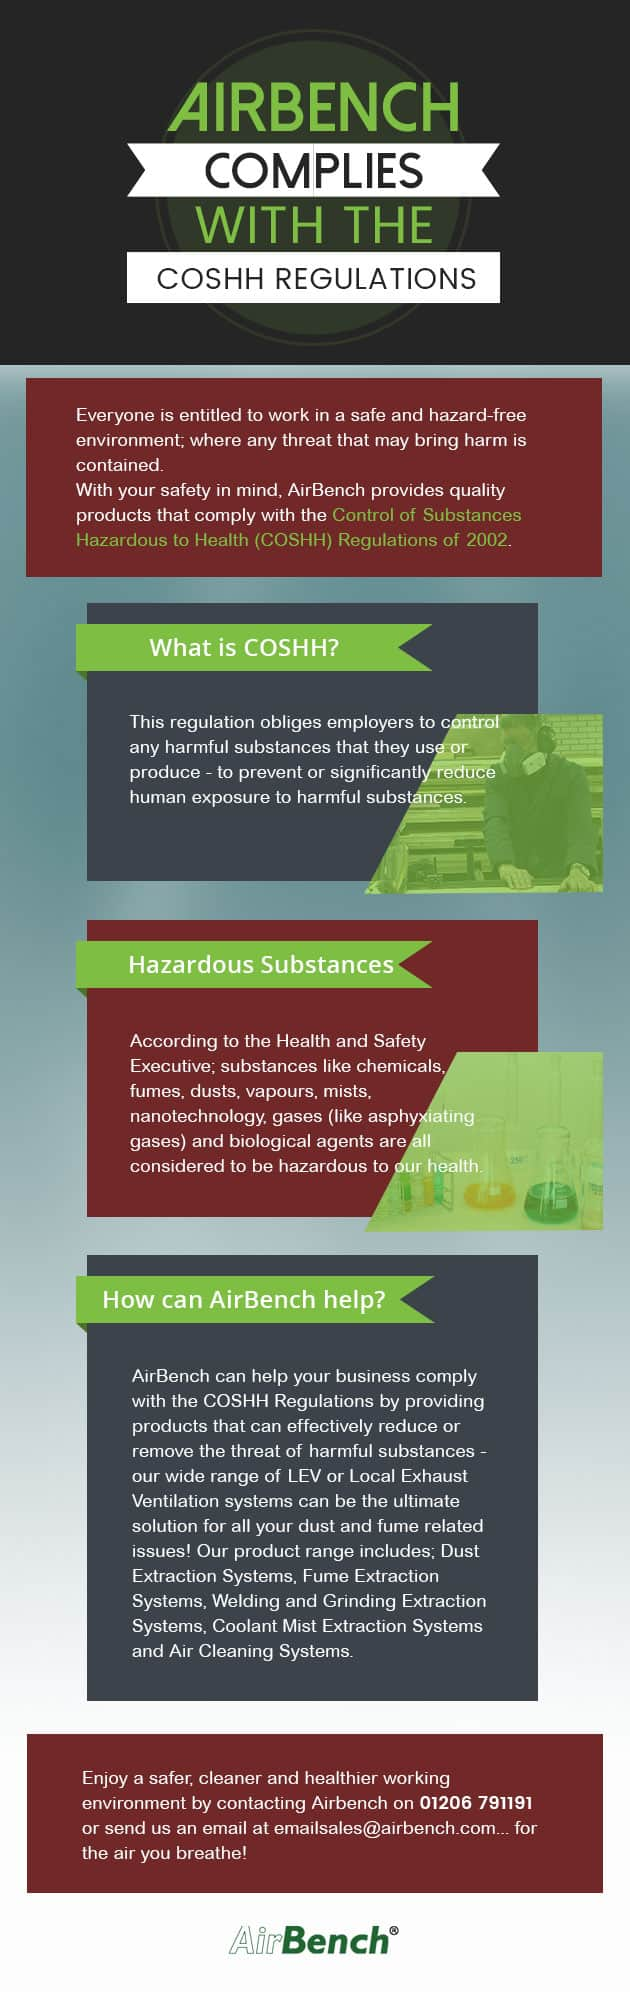 INFOGRAPHICS-airbench-complies-with-the-COSHH-regulations